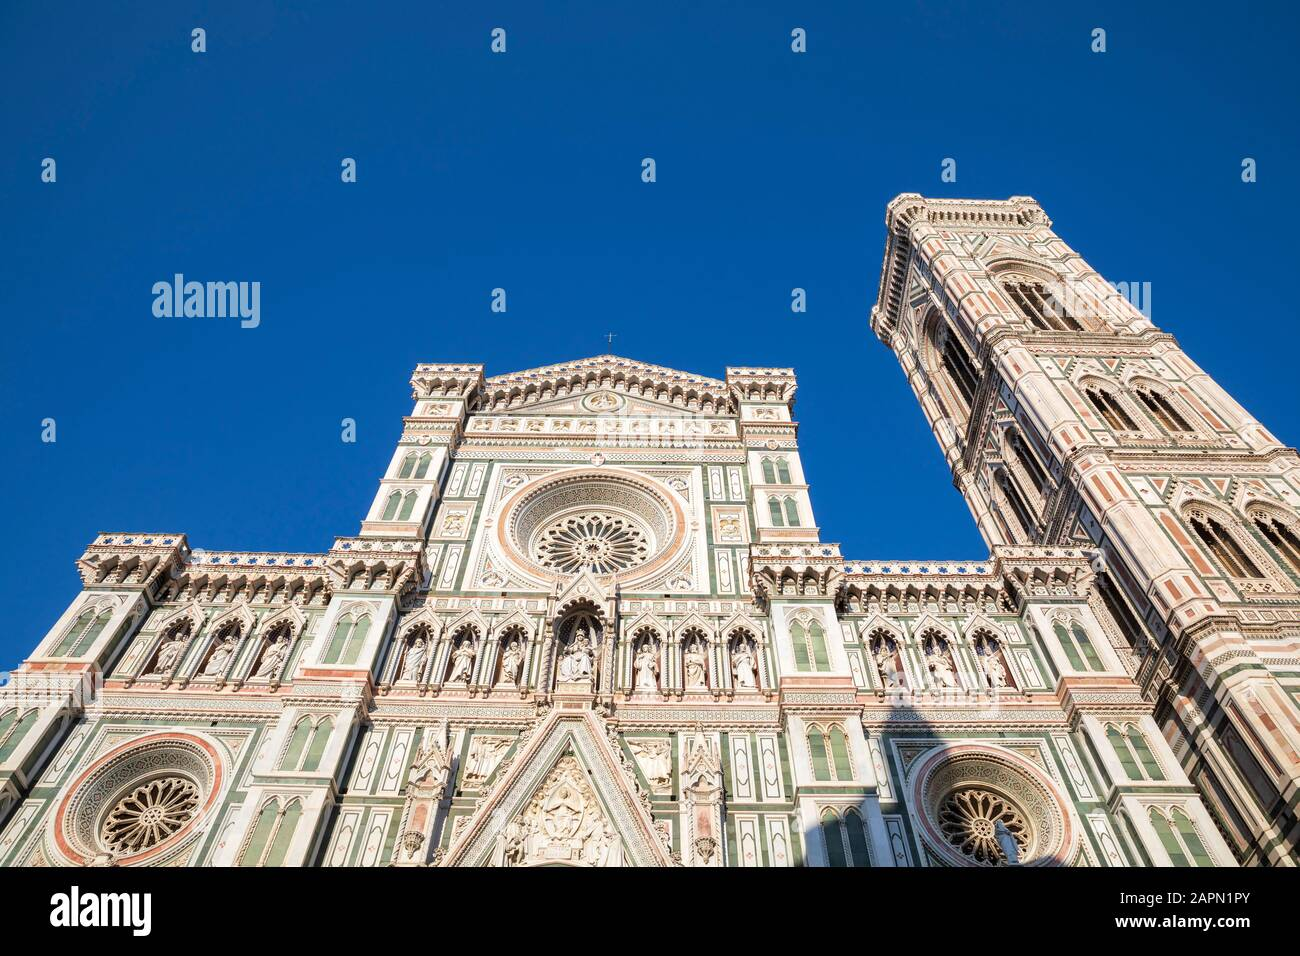 Florence Cathedral & Bell Tower (Campanile) as seen from Piazza del Duomo, Florence, Italy. Stock Photo